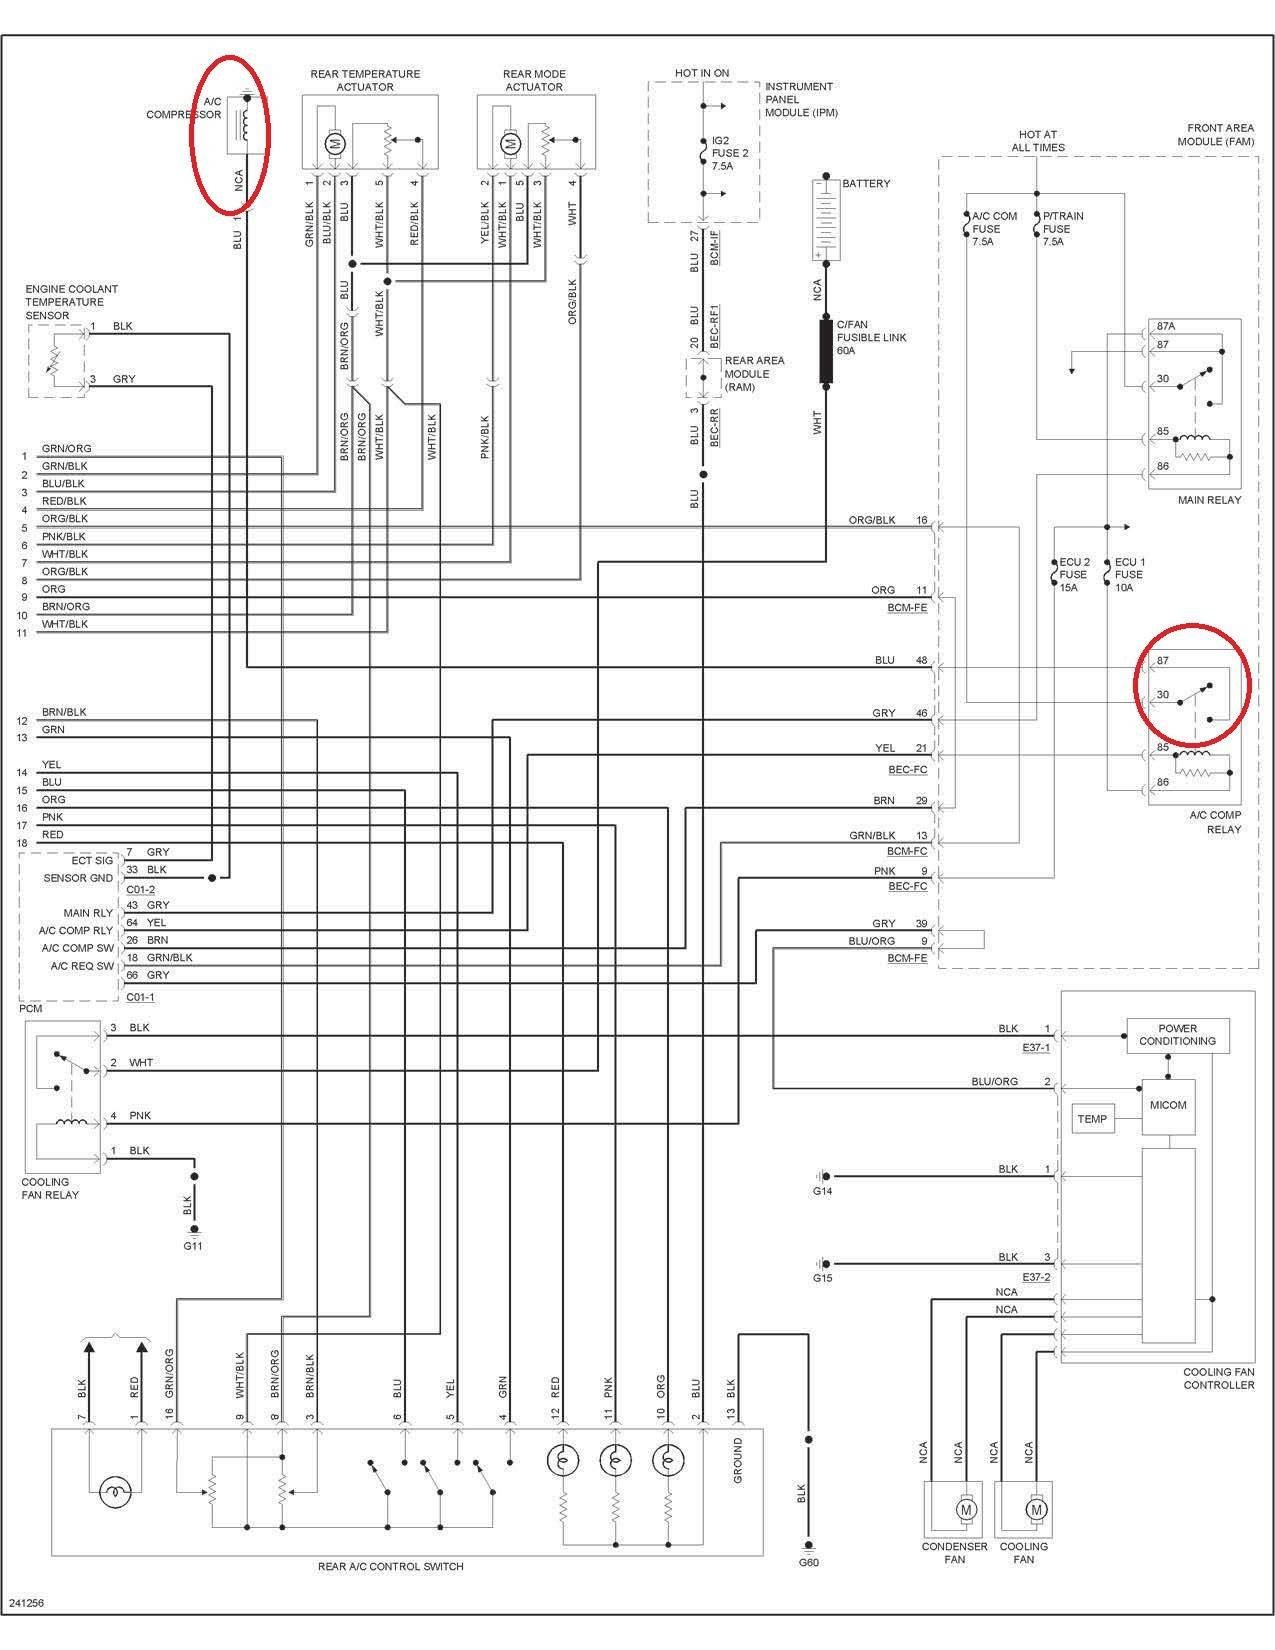 Kia Rio Wiring Diagram FULL HD Version Wiring Diagram -  BOOCH-OOD.EMBALLAGES-SOUS-VIDE.FRDiagram Database And Images - EMBALLAGES-SOUS-VIDE.FR